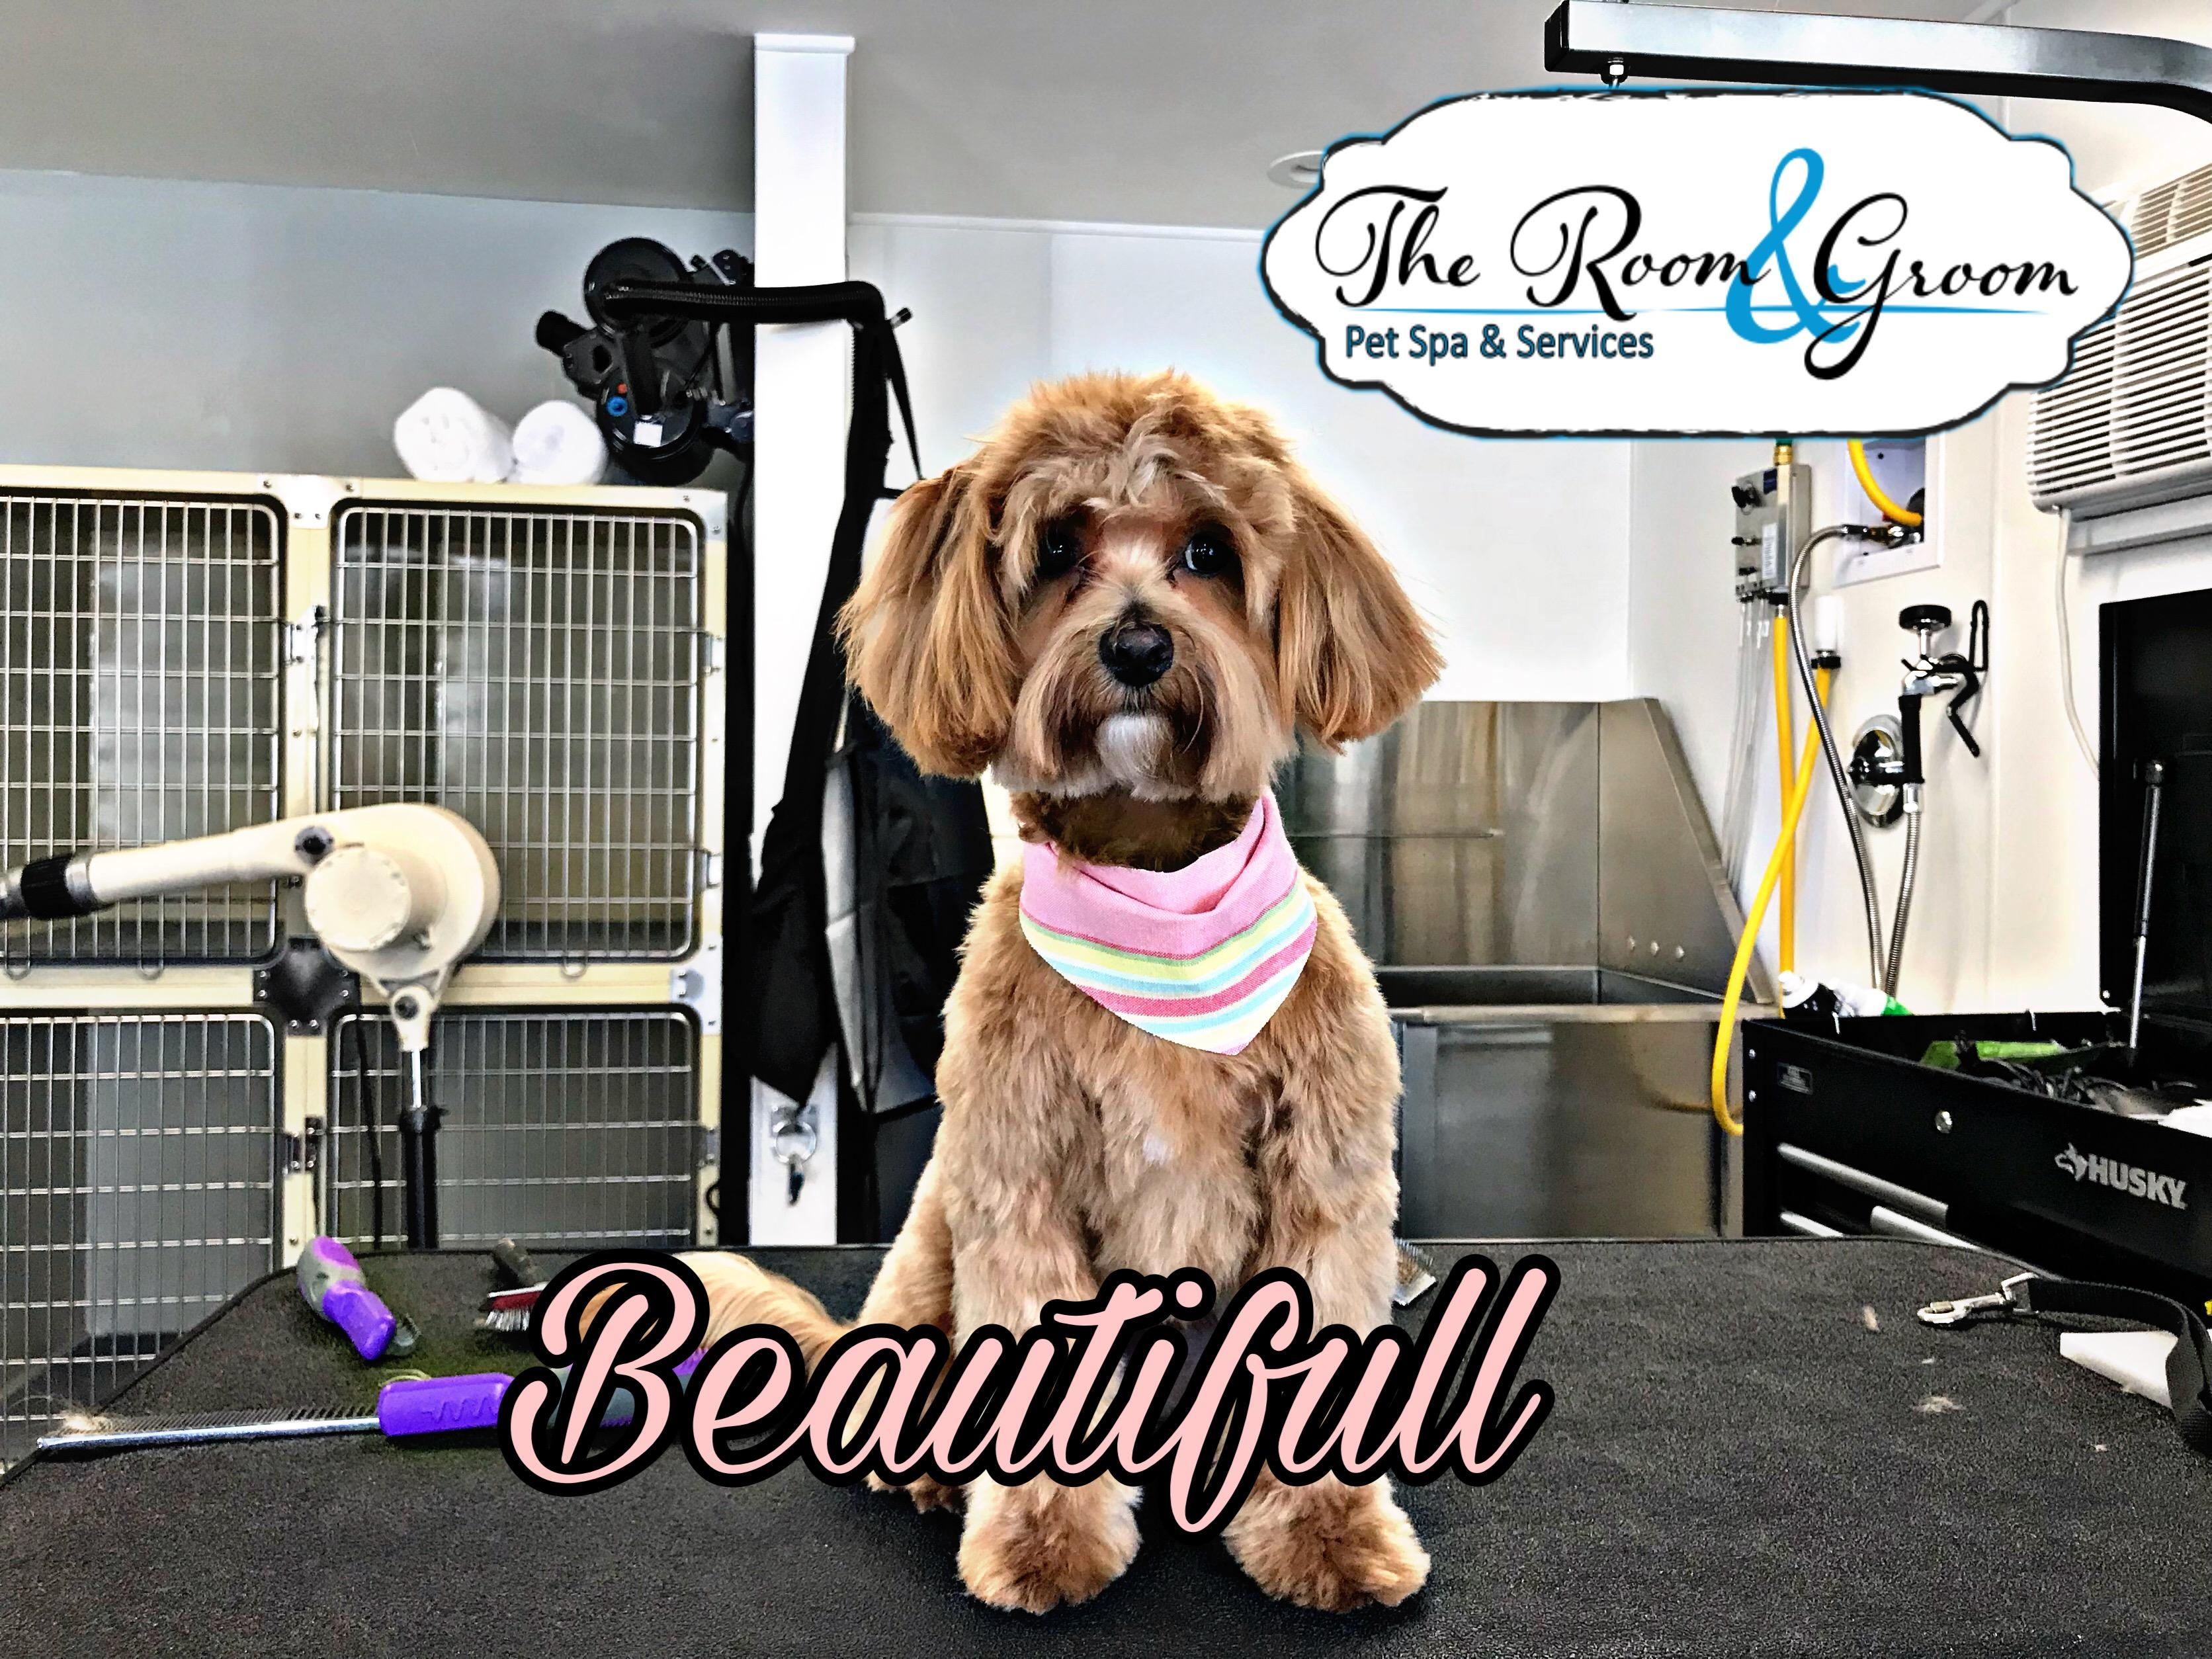 The Room & Groom, Pet Spa & Services image 37